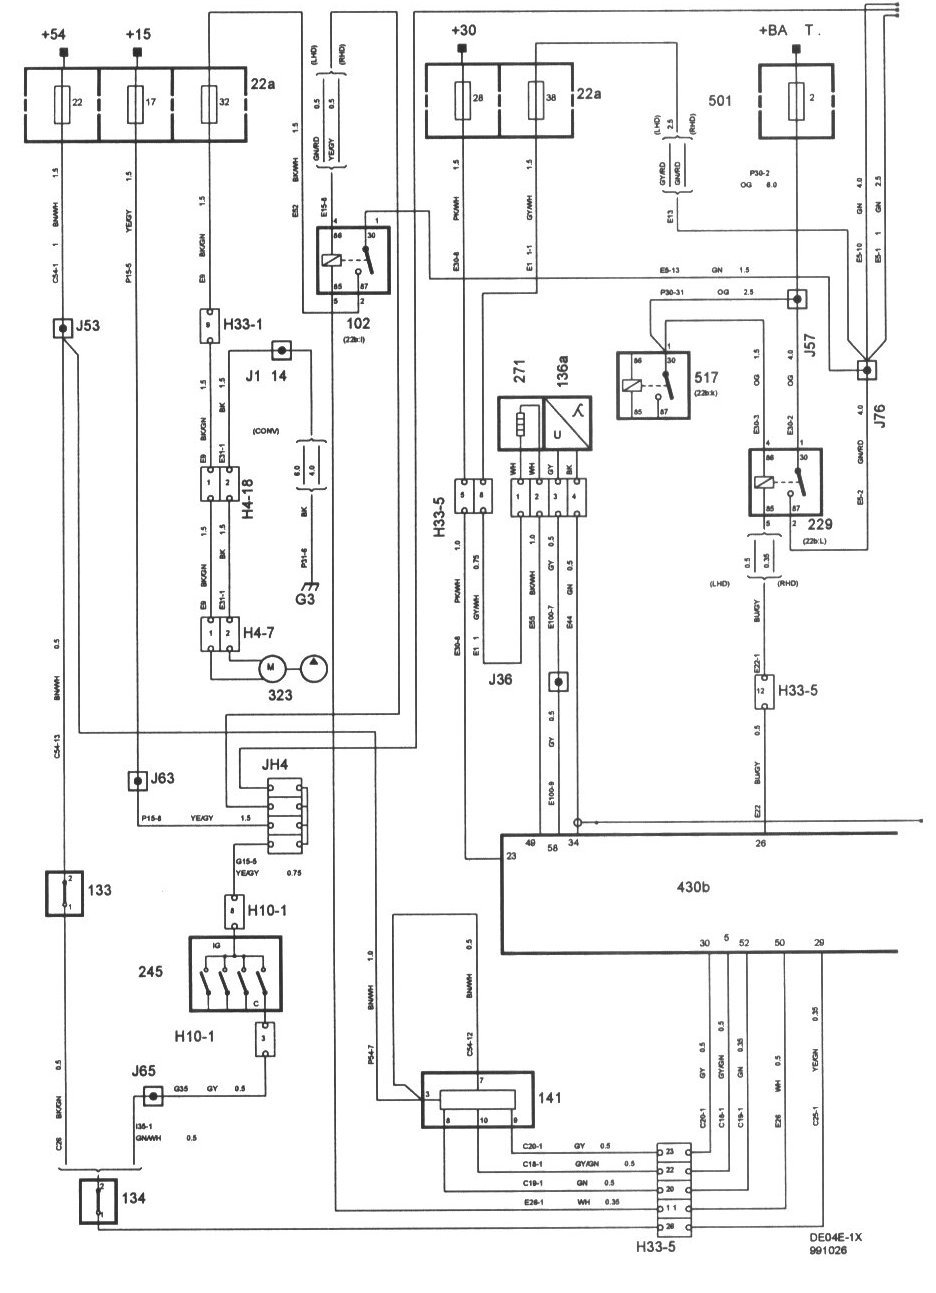 2003 Saab 9 3 Wiring Diagram On Fog Lights Diagrams Photo Controlunit2jpeg Click To Redisplay Small Version Of Image 99 Schematics U2022 Rh Seniorlivinguniversity Co